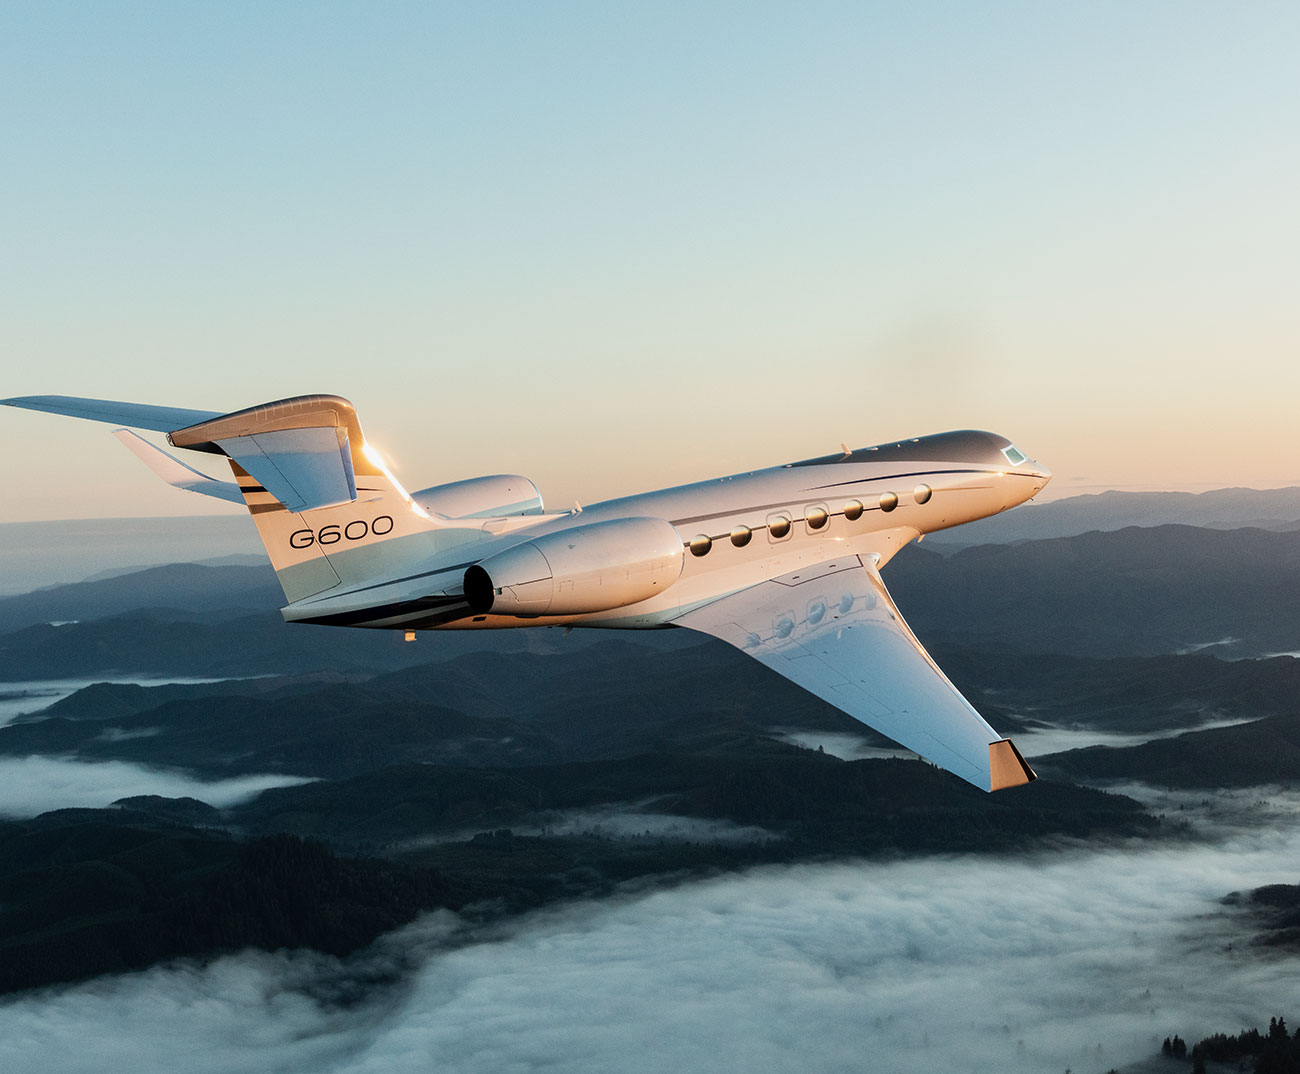 G600 flying over water